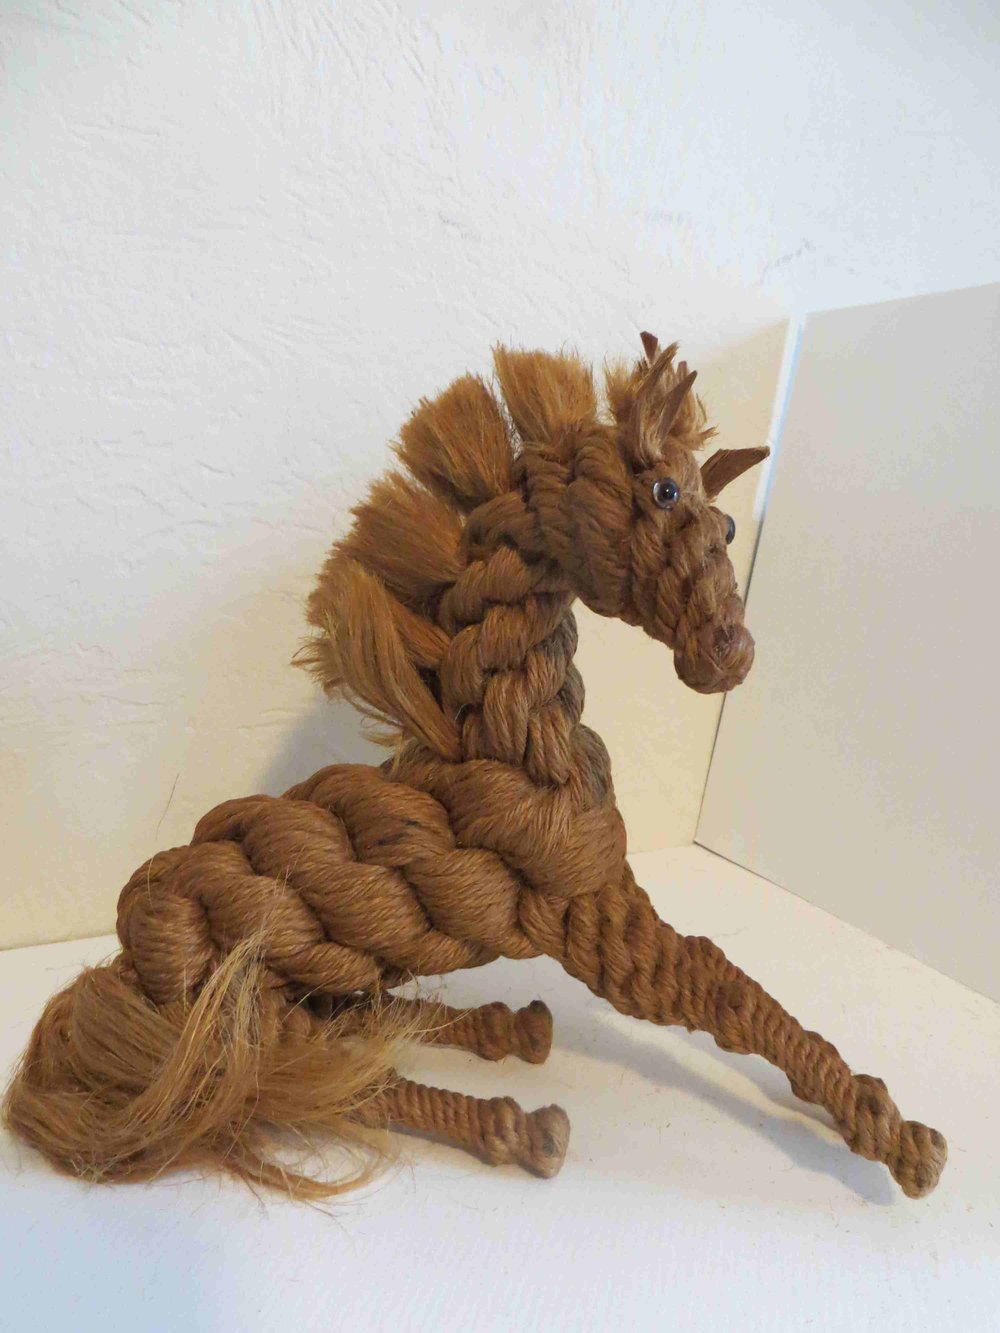 Twine Horse sculpture by Raiford FL INmate ARtist-024 - Copy.jpg